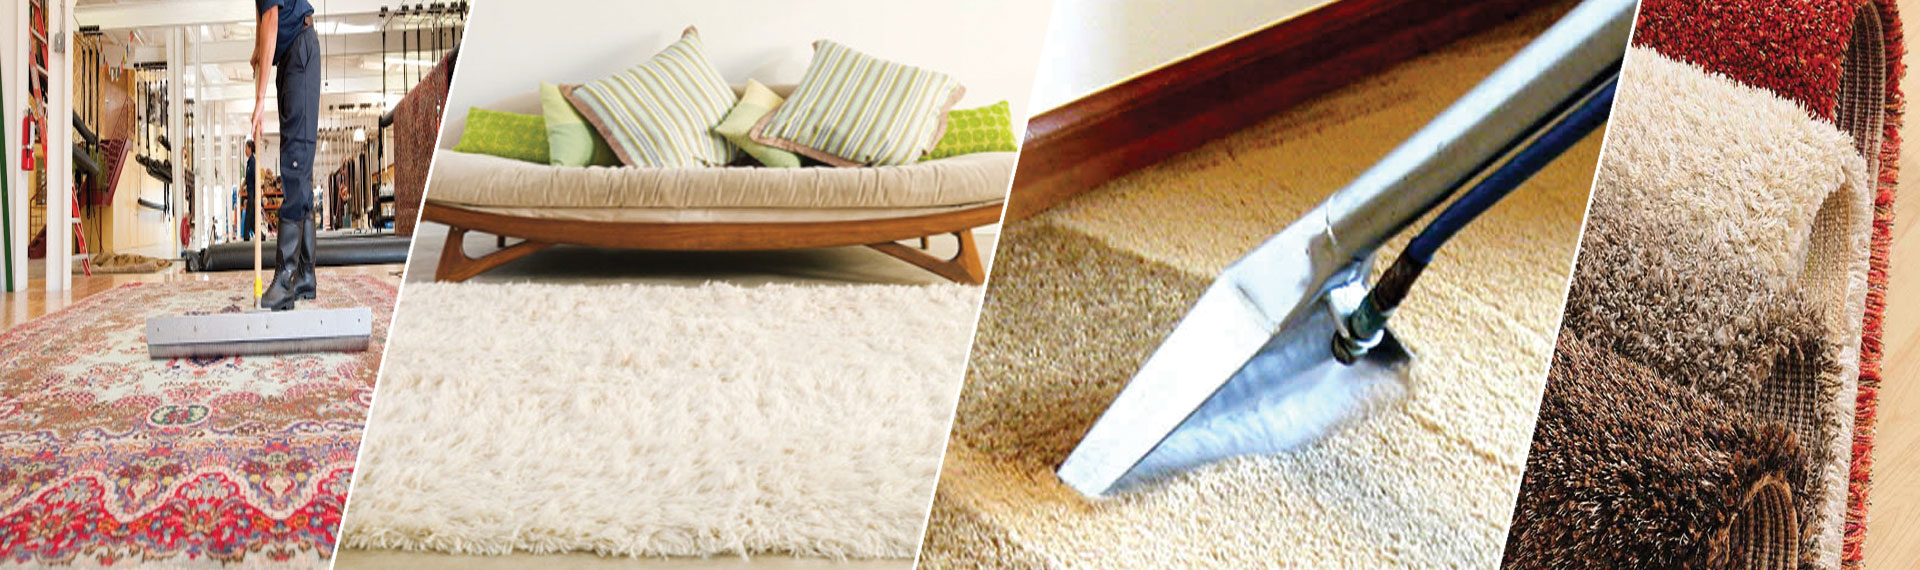 Robert Rug Cleaning Service Wyncote PA